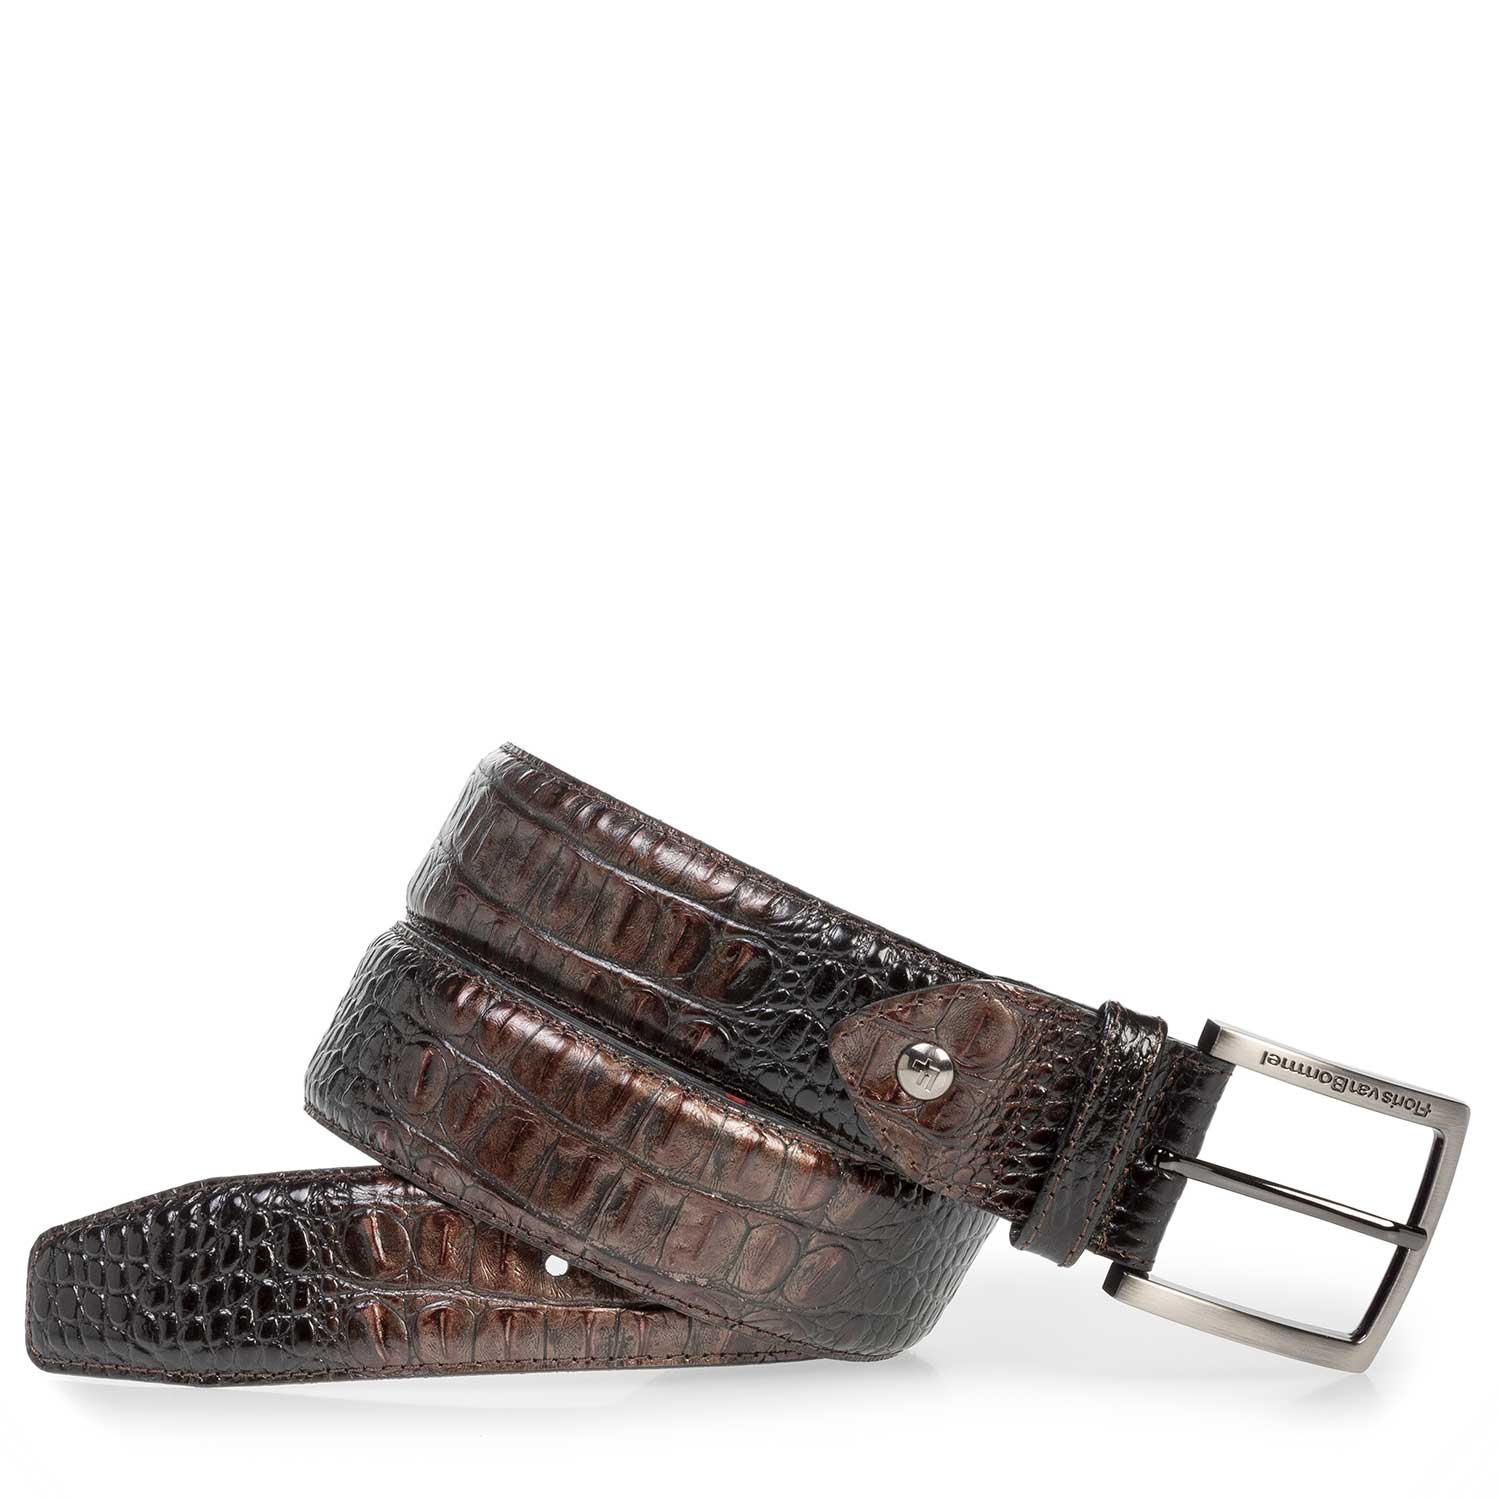 75202/02 - Leather belt with bronze-coloured croco print